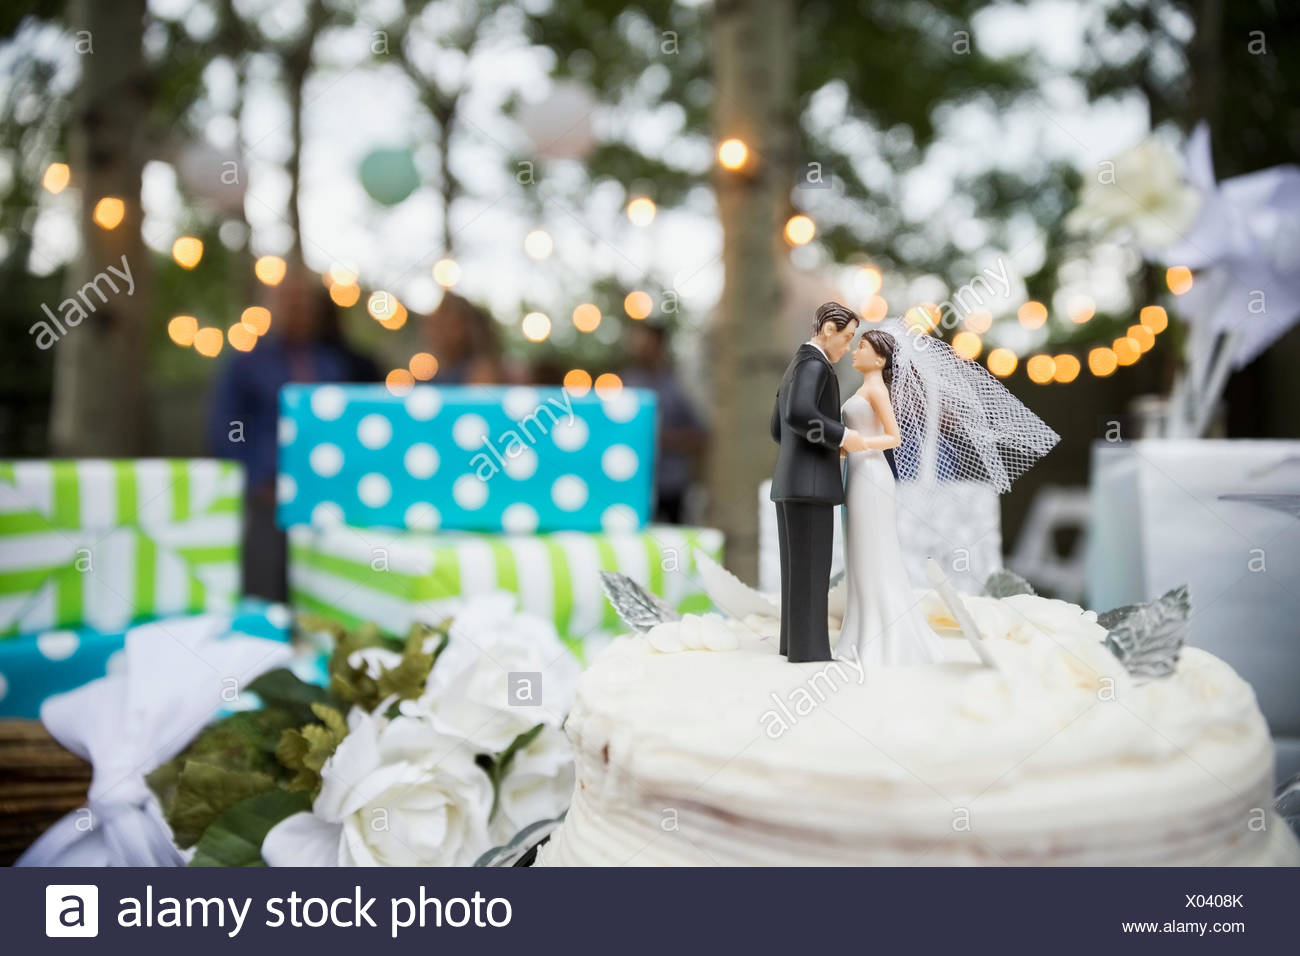 Bride and groom cake topper on cake - Stock Image